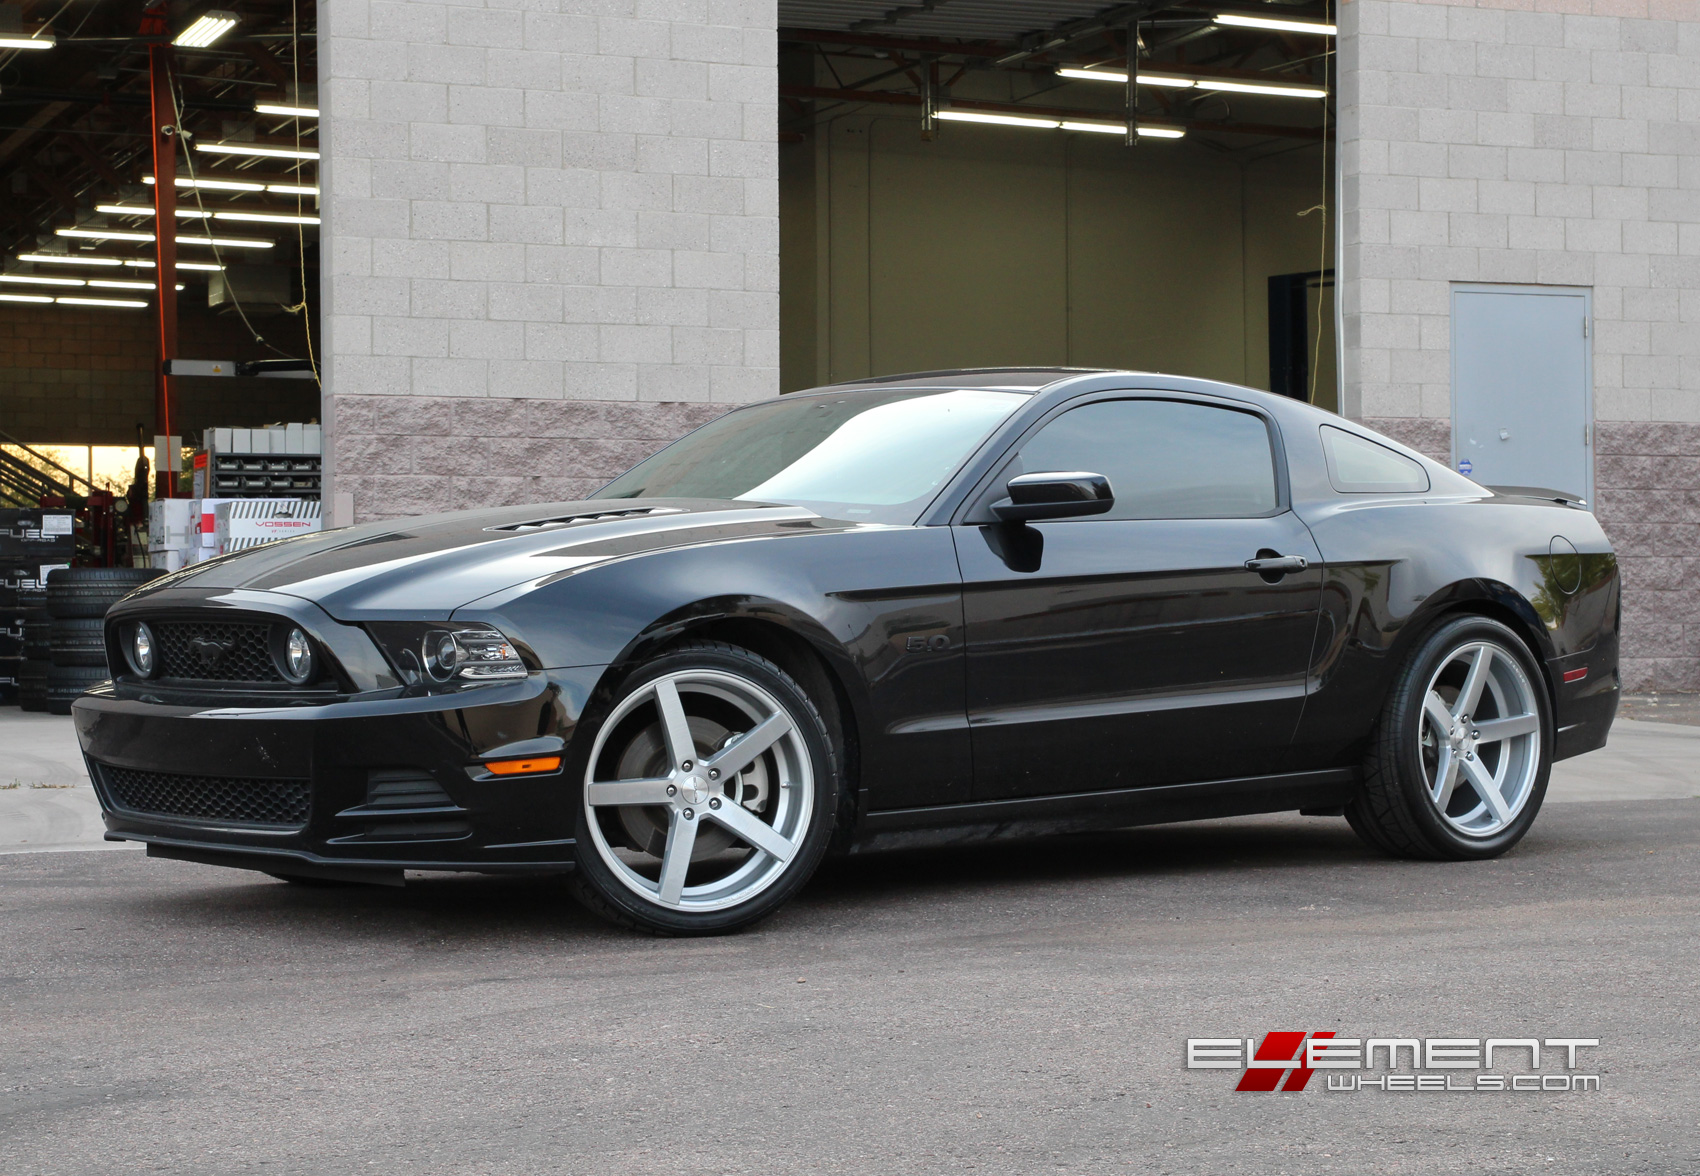 20 Inch Staggered Rovos Durban Wheels On 2013 Ford Mustang